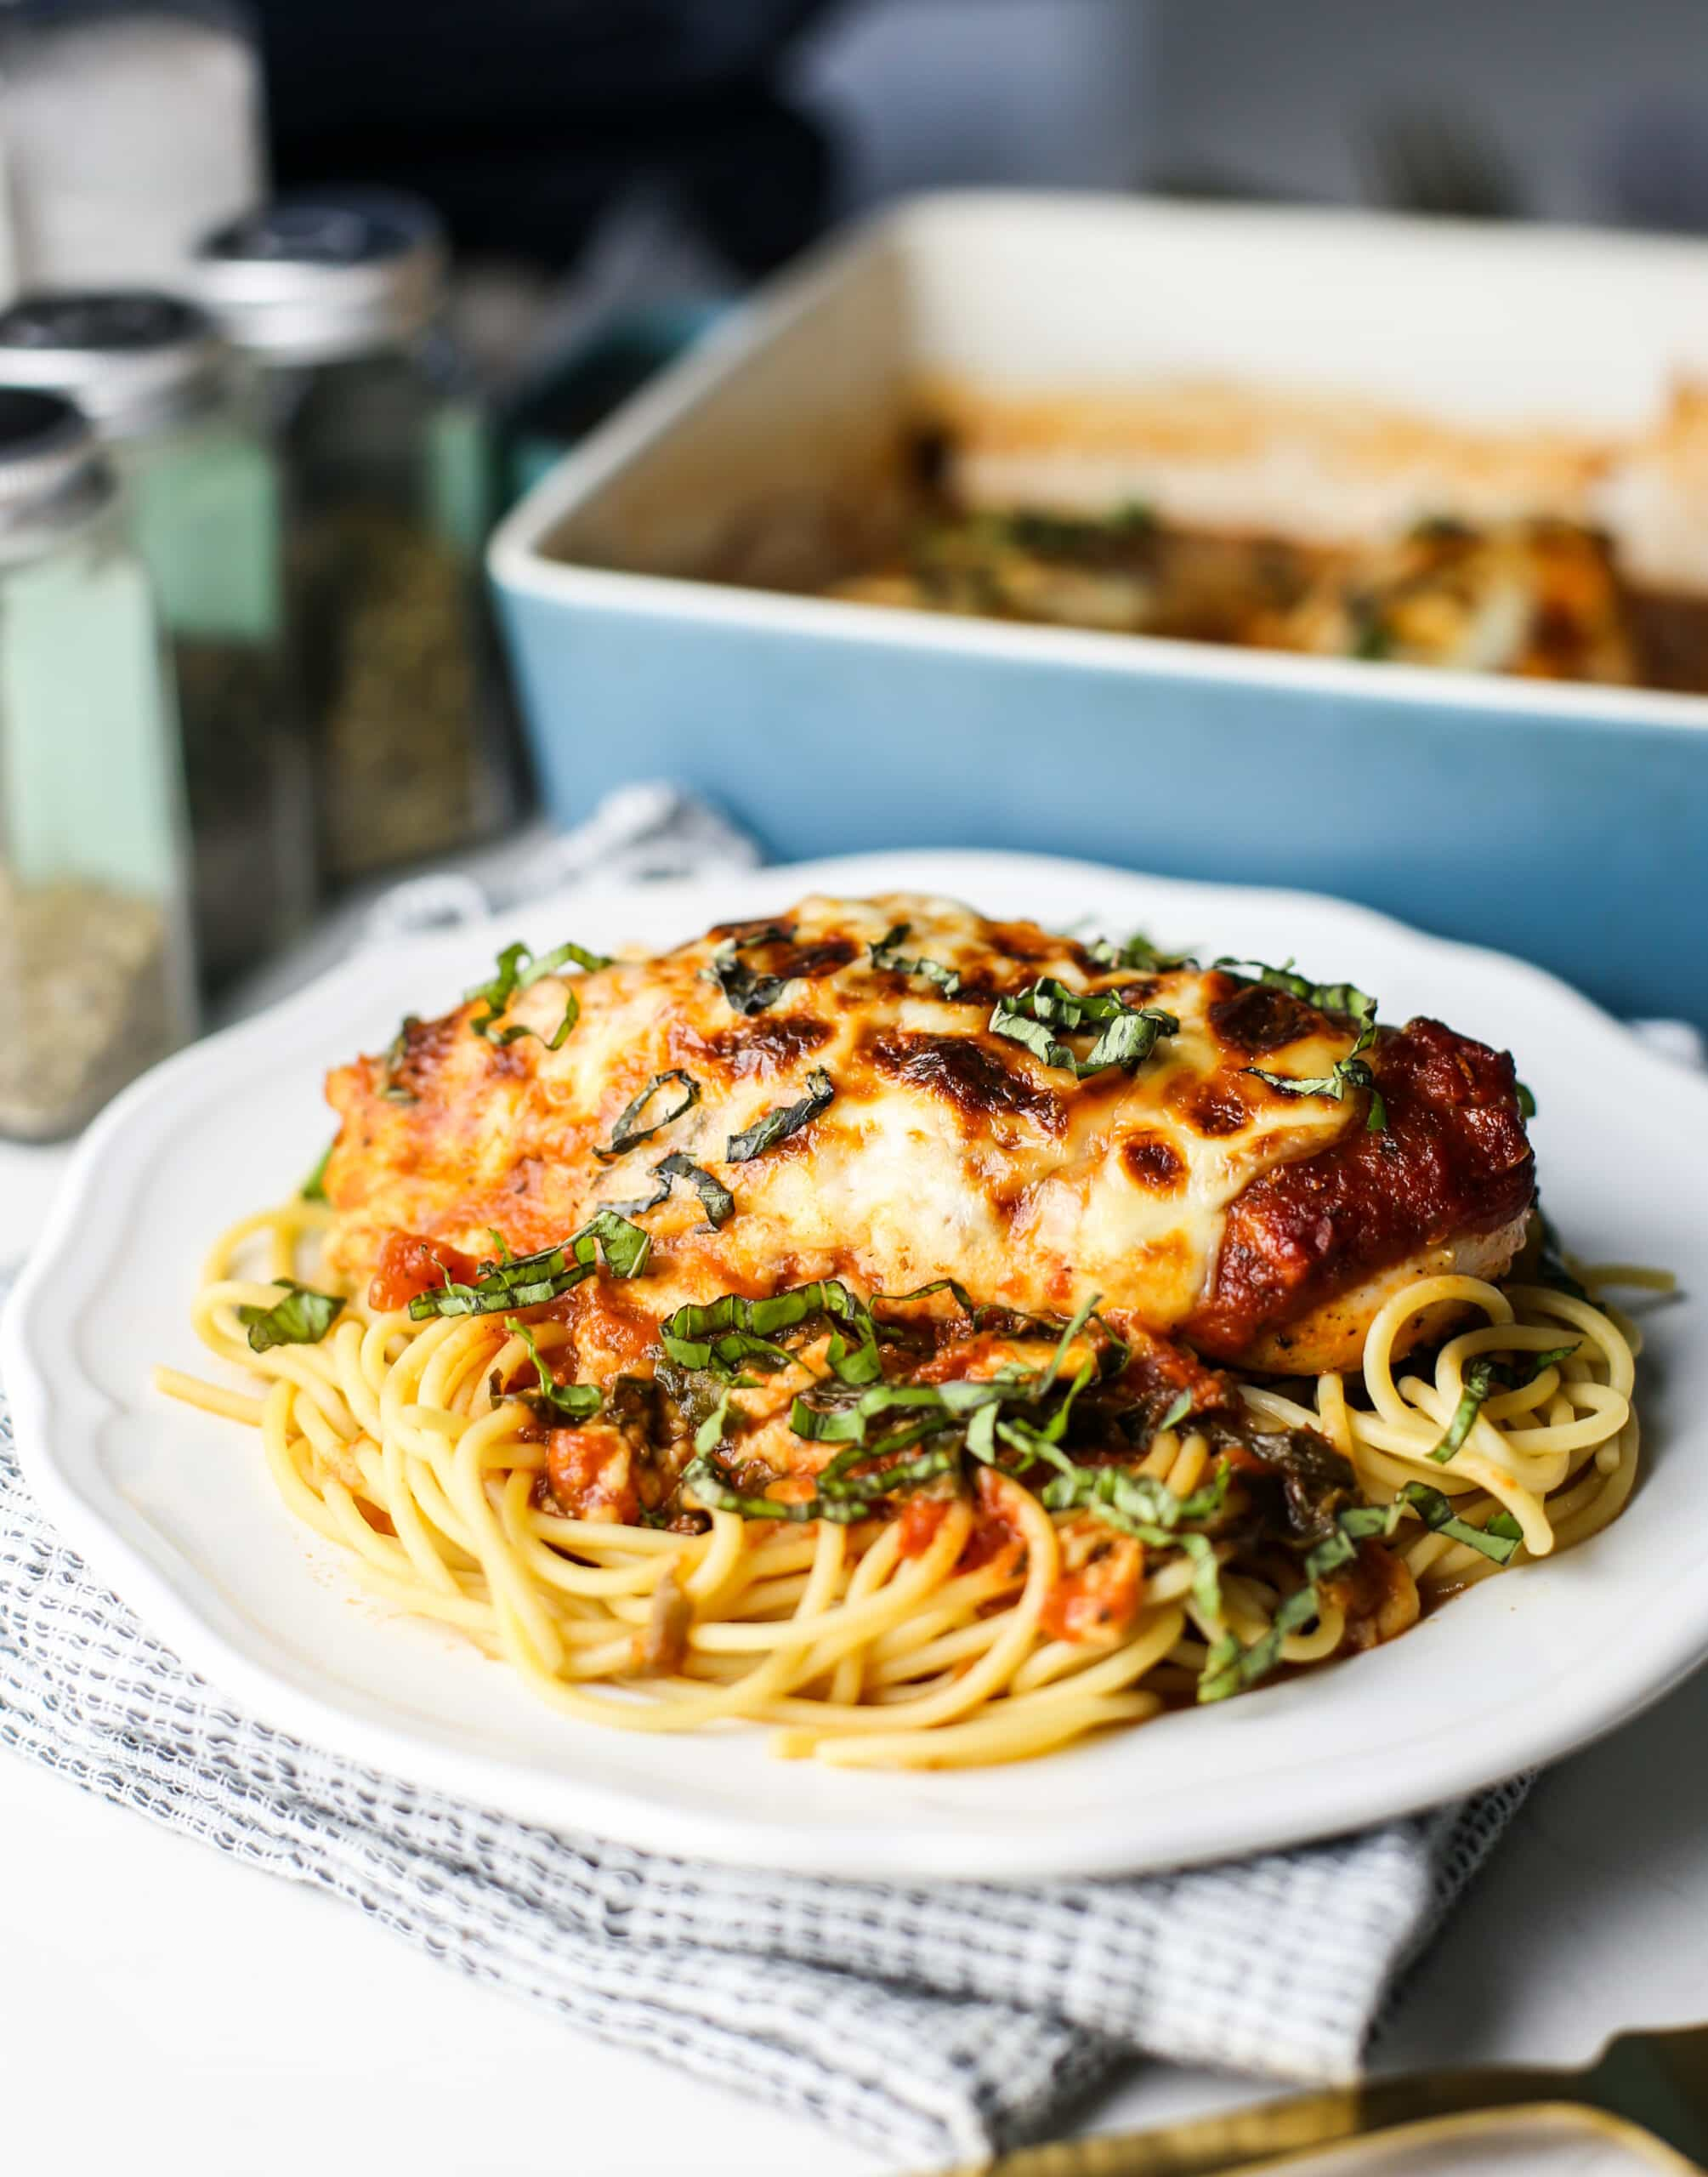 A side view of baked chicken with mozzeralla and marinara sauce on top of spaghetti in a white plate.